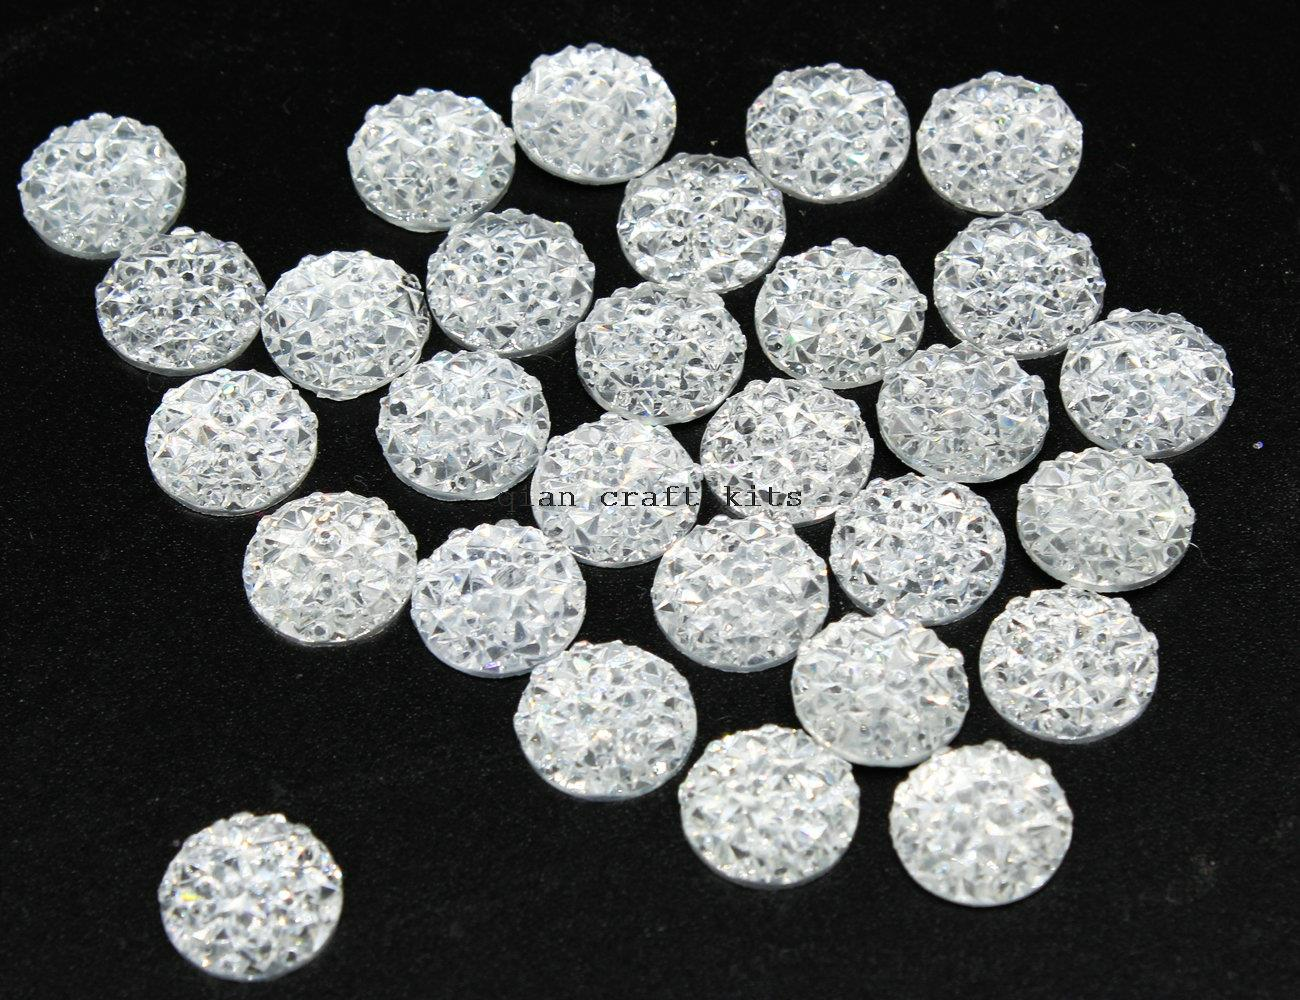 1000pcs 10mm resin drusy cabochons, shiny clear silver iridescent round druzy cabs glitter DIY Decoden Supplies Adornments D25